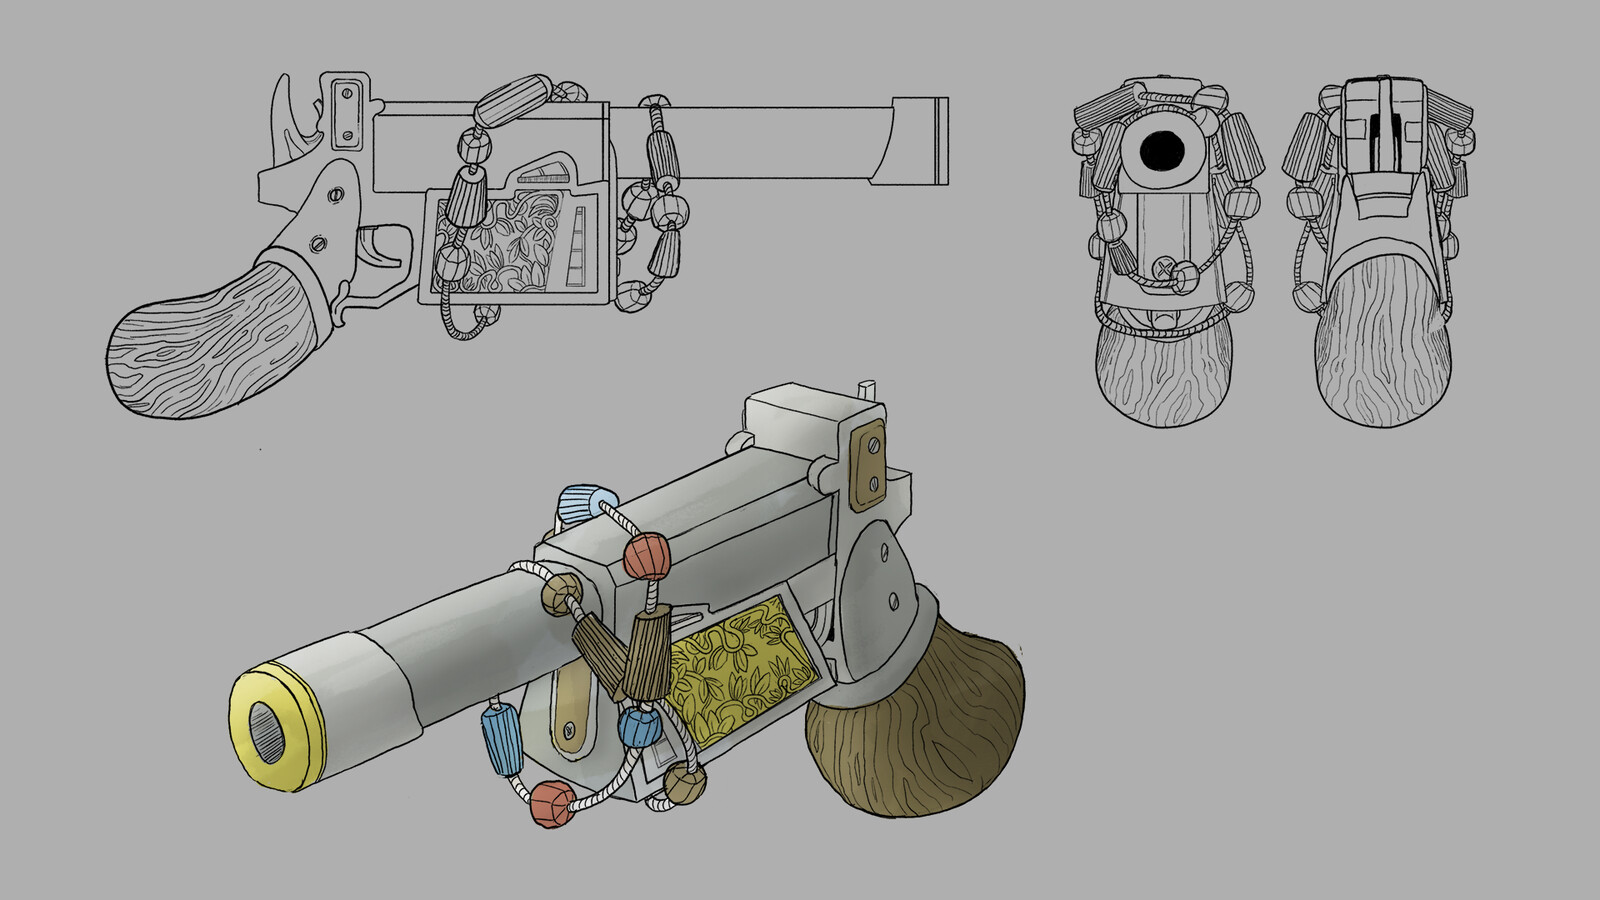 Weapon line art illustration for the prop concept along with different directional line art that would be used in the 3d modeling process.